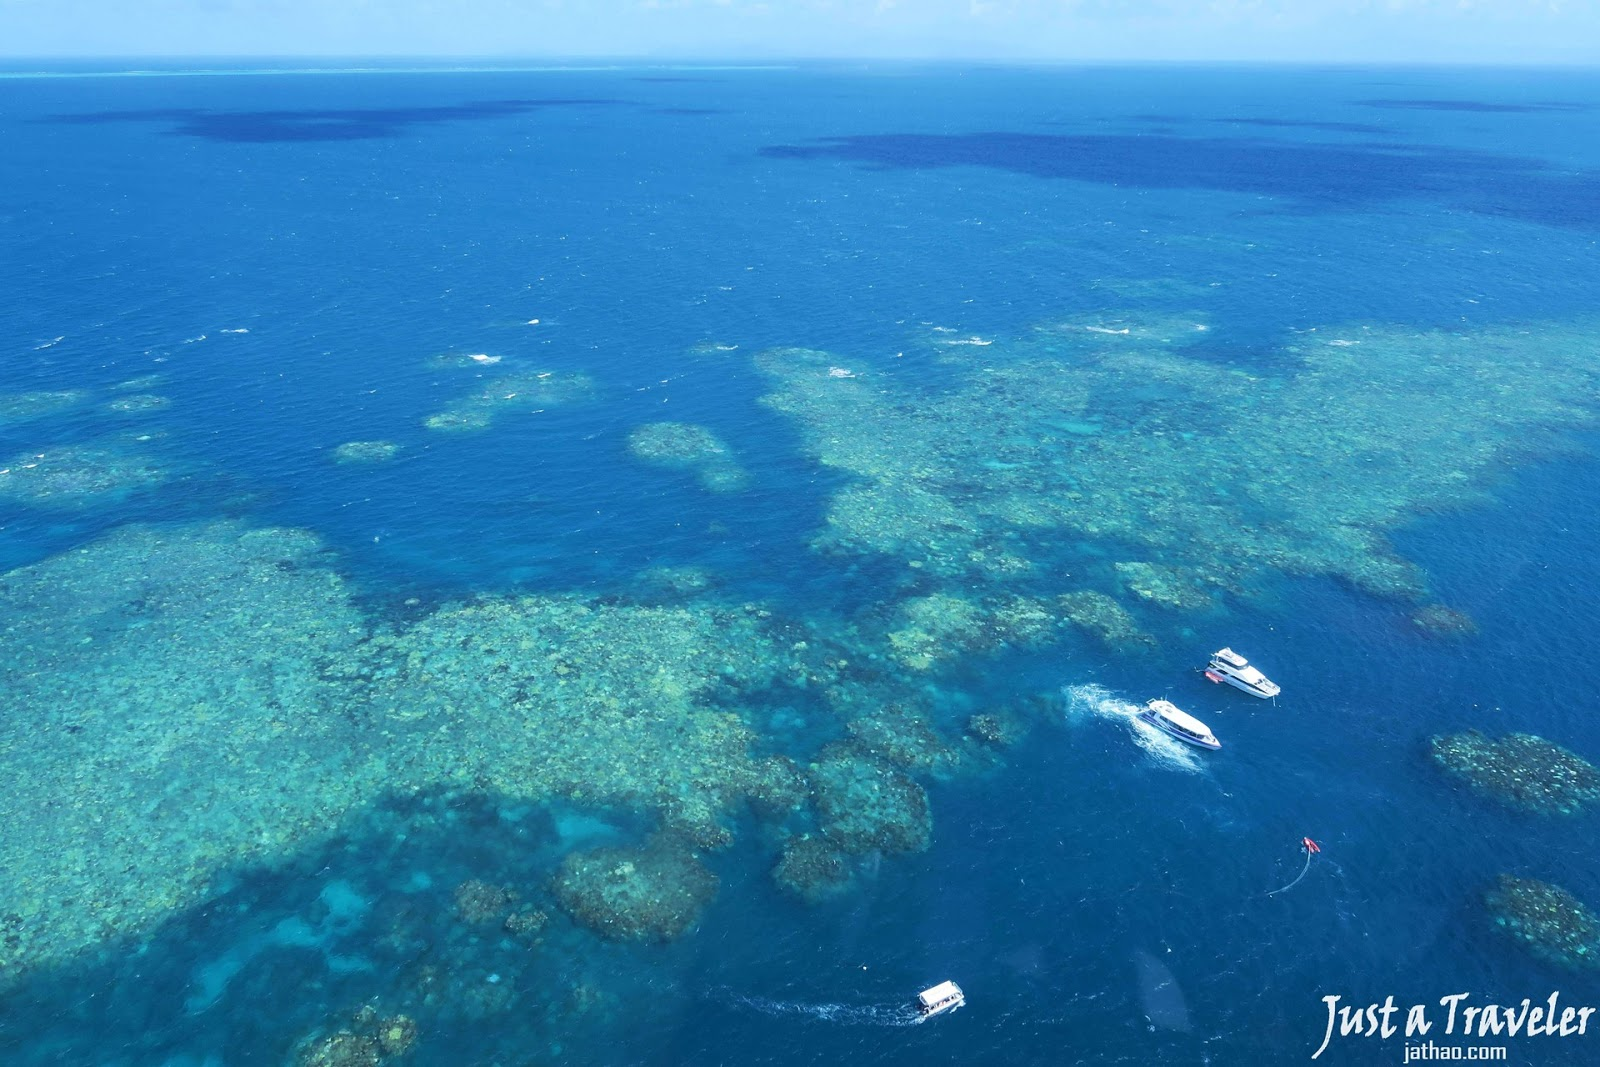 凱恩斯-景點-推薦-大堡礁-旅遊-自由行-澳洲-Cairns-Tourist-Attraction-Great-Barrier-Reef-Travel-Australia